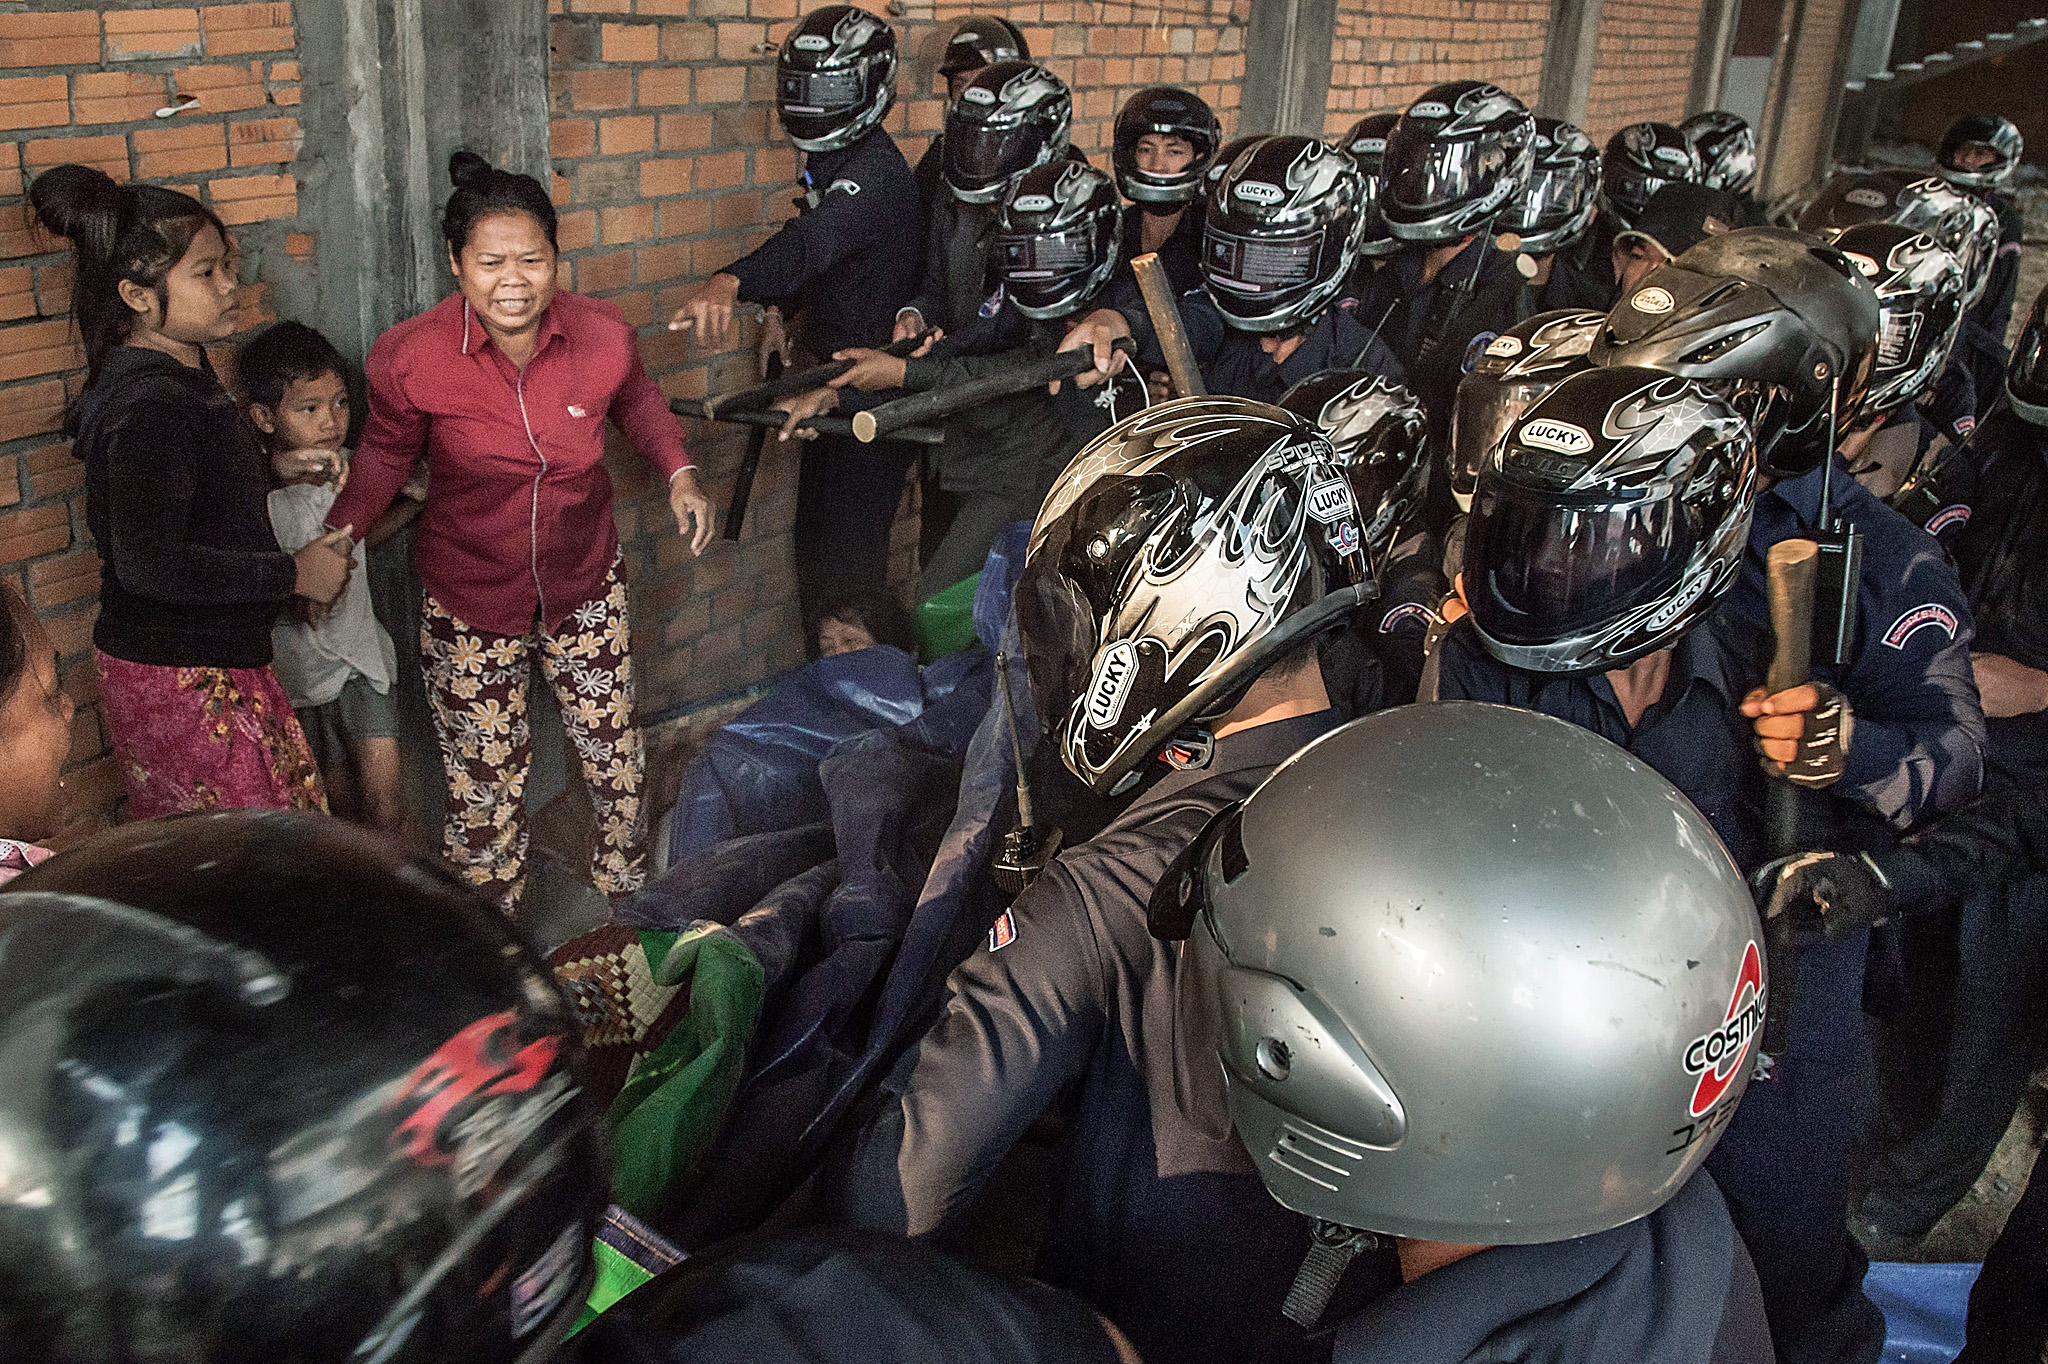 ***BESTPIX*** Forced Eviction Turns Violent In Phnom Penh...PHNOM PENH, CAMBODIA - FEBRUARY 14:  A woman and two children are surrounded by police and municipal security forces during clashes with residents of Borei Keila community on February 14, 2014 in Phnom Penh, Cambodia.  A building which has been occupied for the last two days has been raided by the Cambodian Security forces who sought to forcibly evict the residents. . Early on the morning of Valentine's Day, the road leading into Borei Keila was blocked by riot police, military police, and municipal security guards, who had been deployed to remove all of the families which had occupied the building. Over the course of the violent eviction, at least 6 people were injured, including a woman who was 6 months pregnant. Two days before, on Wednesday, more than 150 people, who had been evicted from their former homes in Borei Keila in January 2012, had moved into the building. The housing building had been promised to them in 2003, as part of a land sharing agreement when the land of Borei Keila had been leased to a private company. The families who had chosen to stay in Borei Keila were violently evicted in 2012 by over 100 security forces, who destroyed more than 200 homes.